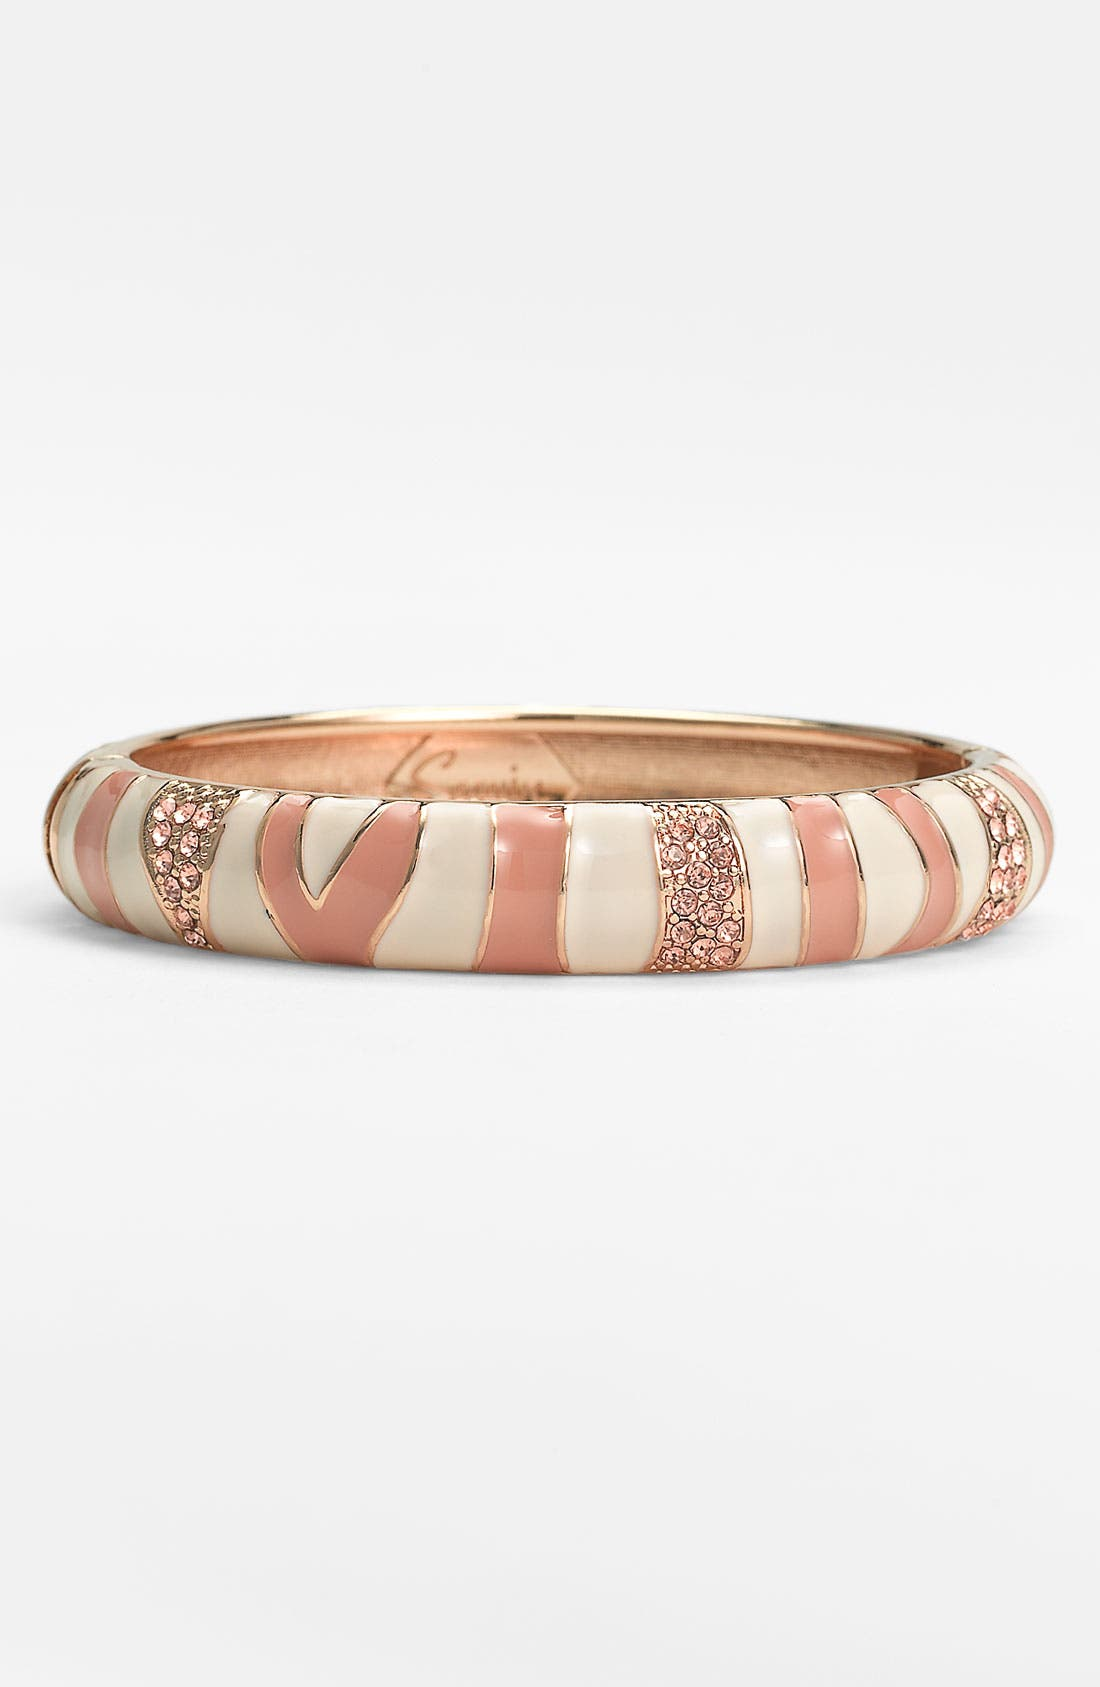 Main Image - Sequin Medium Zebra Enamel Bangle